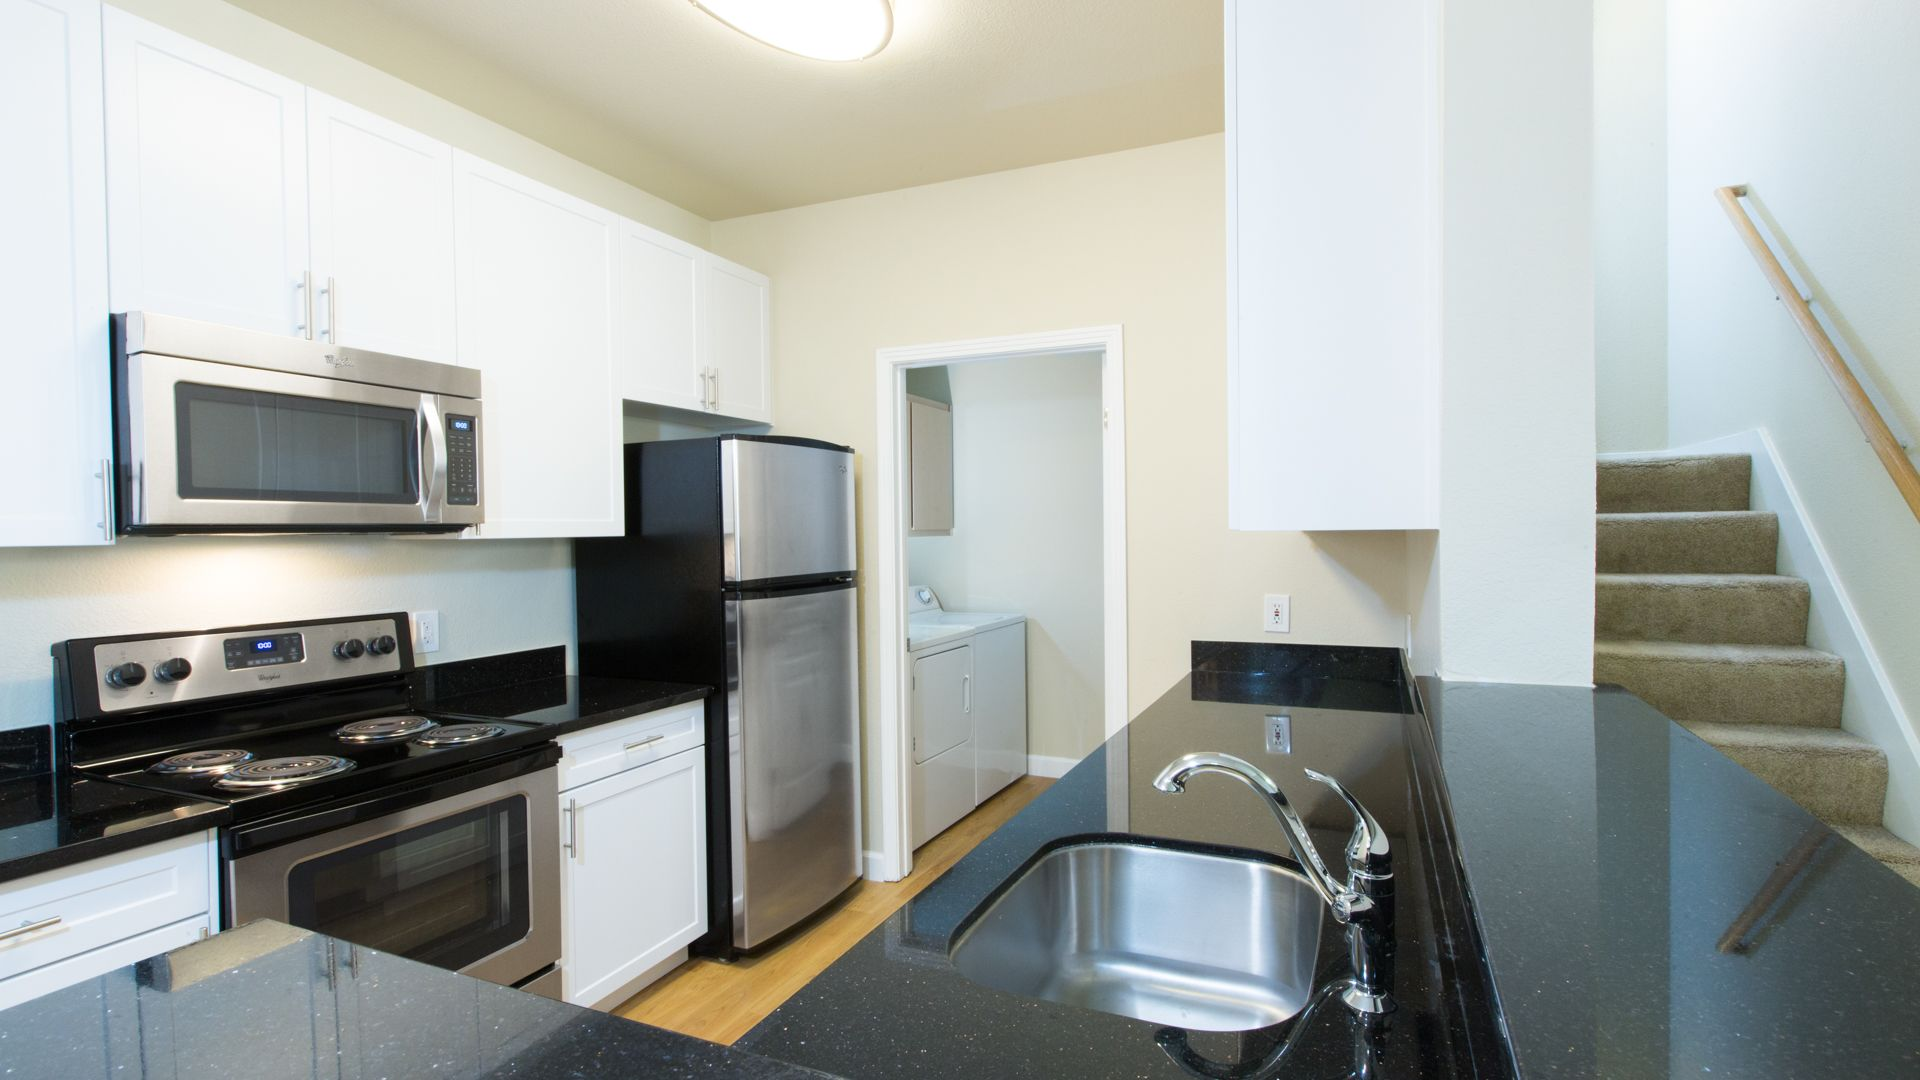 City Gate at Cupertino Apartments - Kitchen and Washer and Dryer